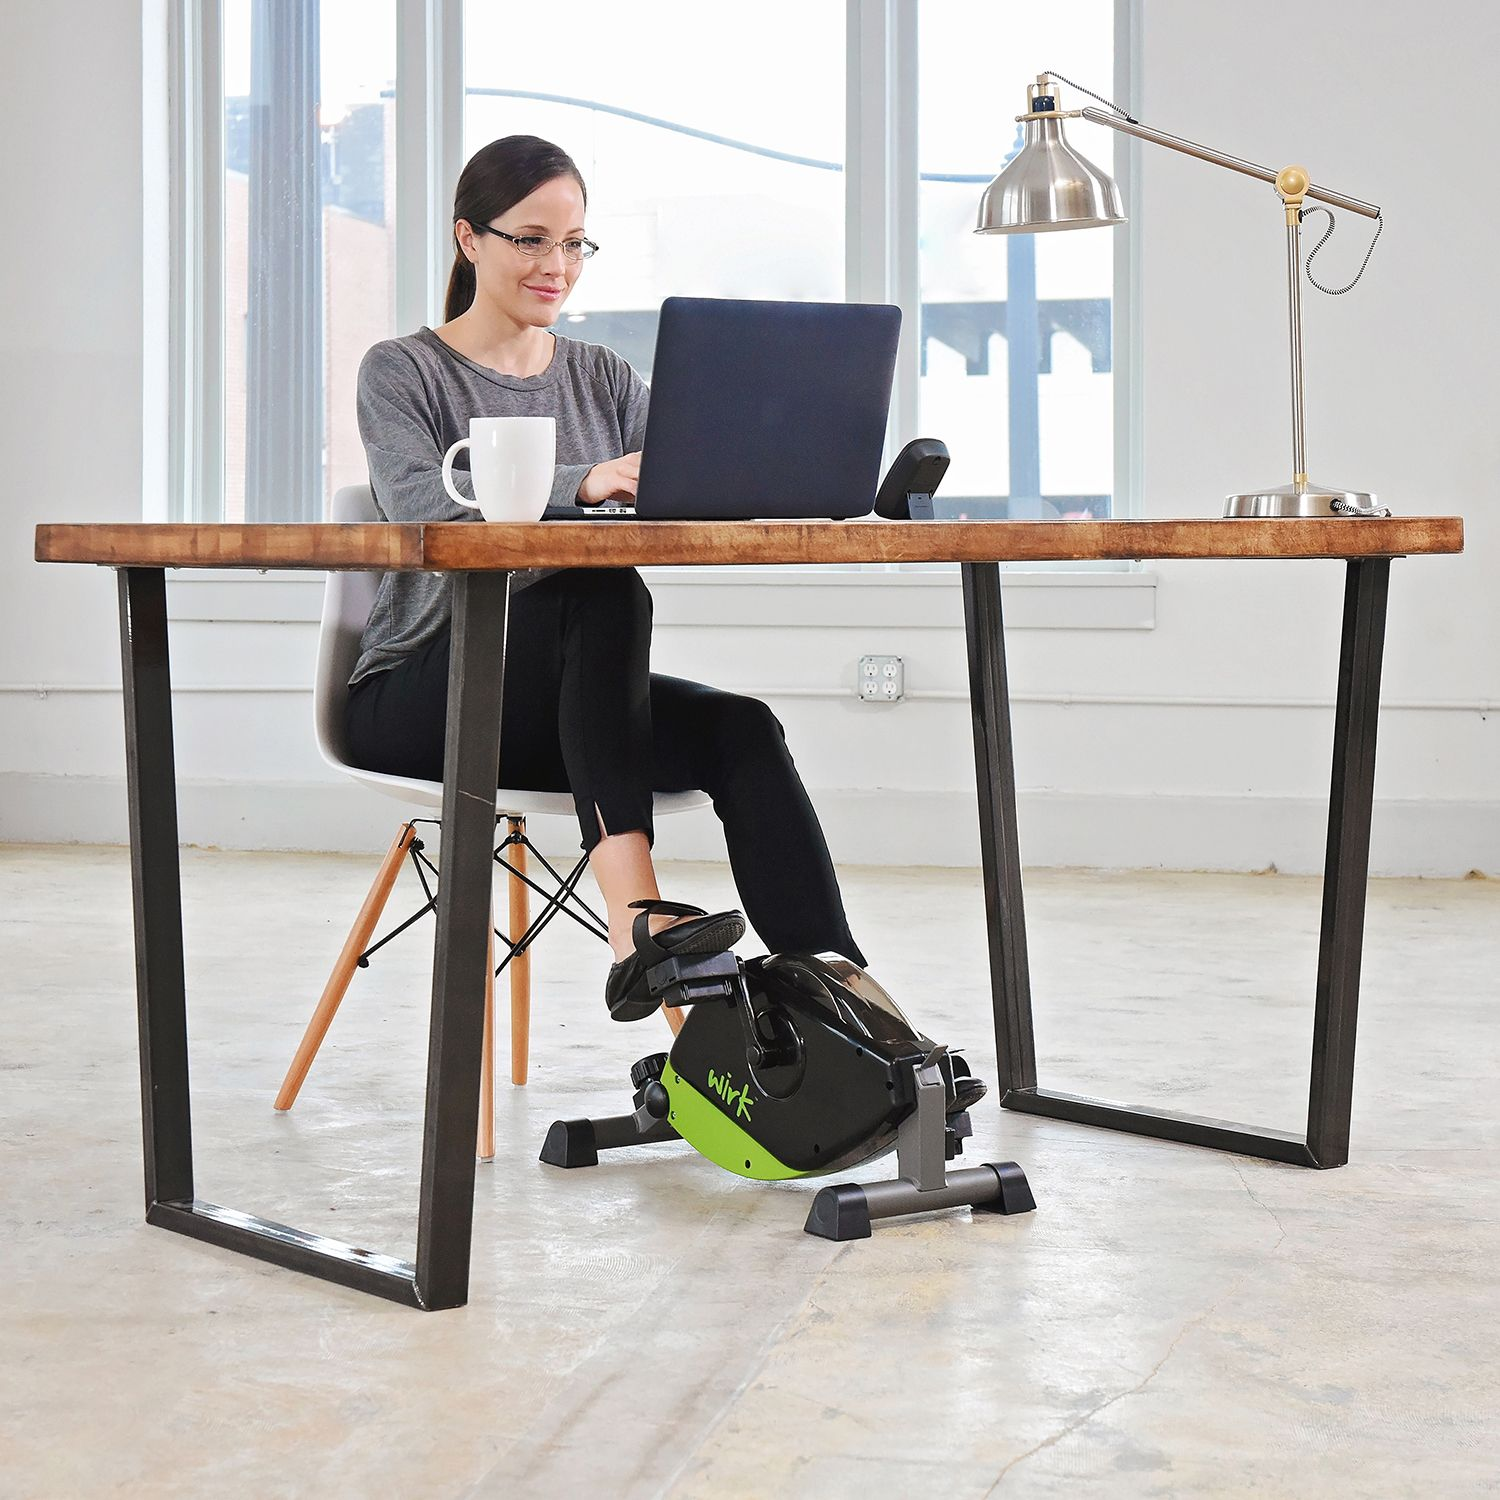 Fantastic Stamina Wirk Under Desk Exercise Bike Wirk Office Download Free Architecture Designs Intelgarnamadebymaigaardcom